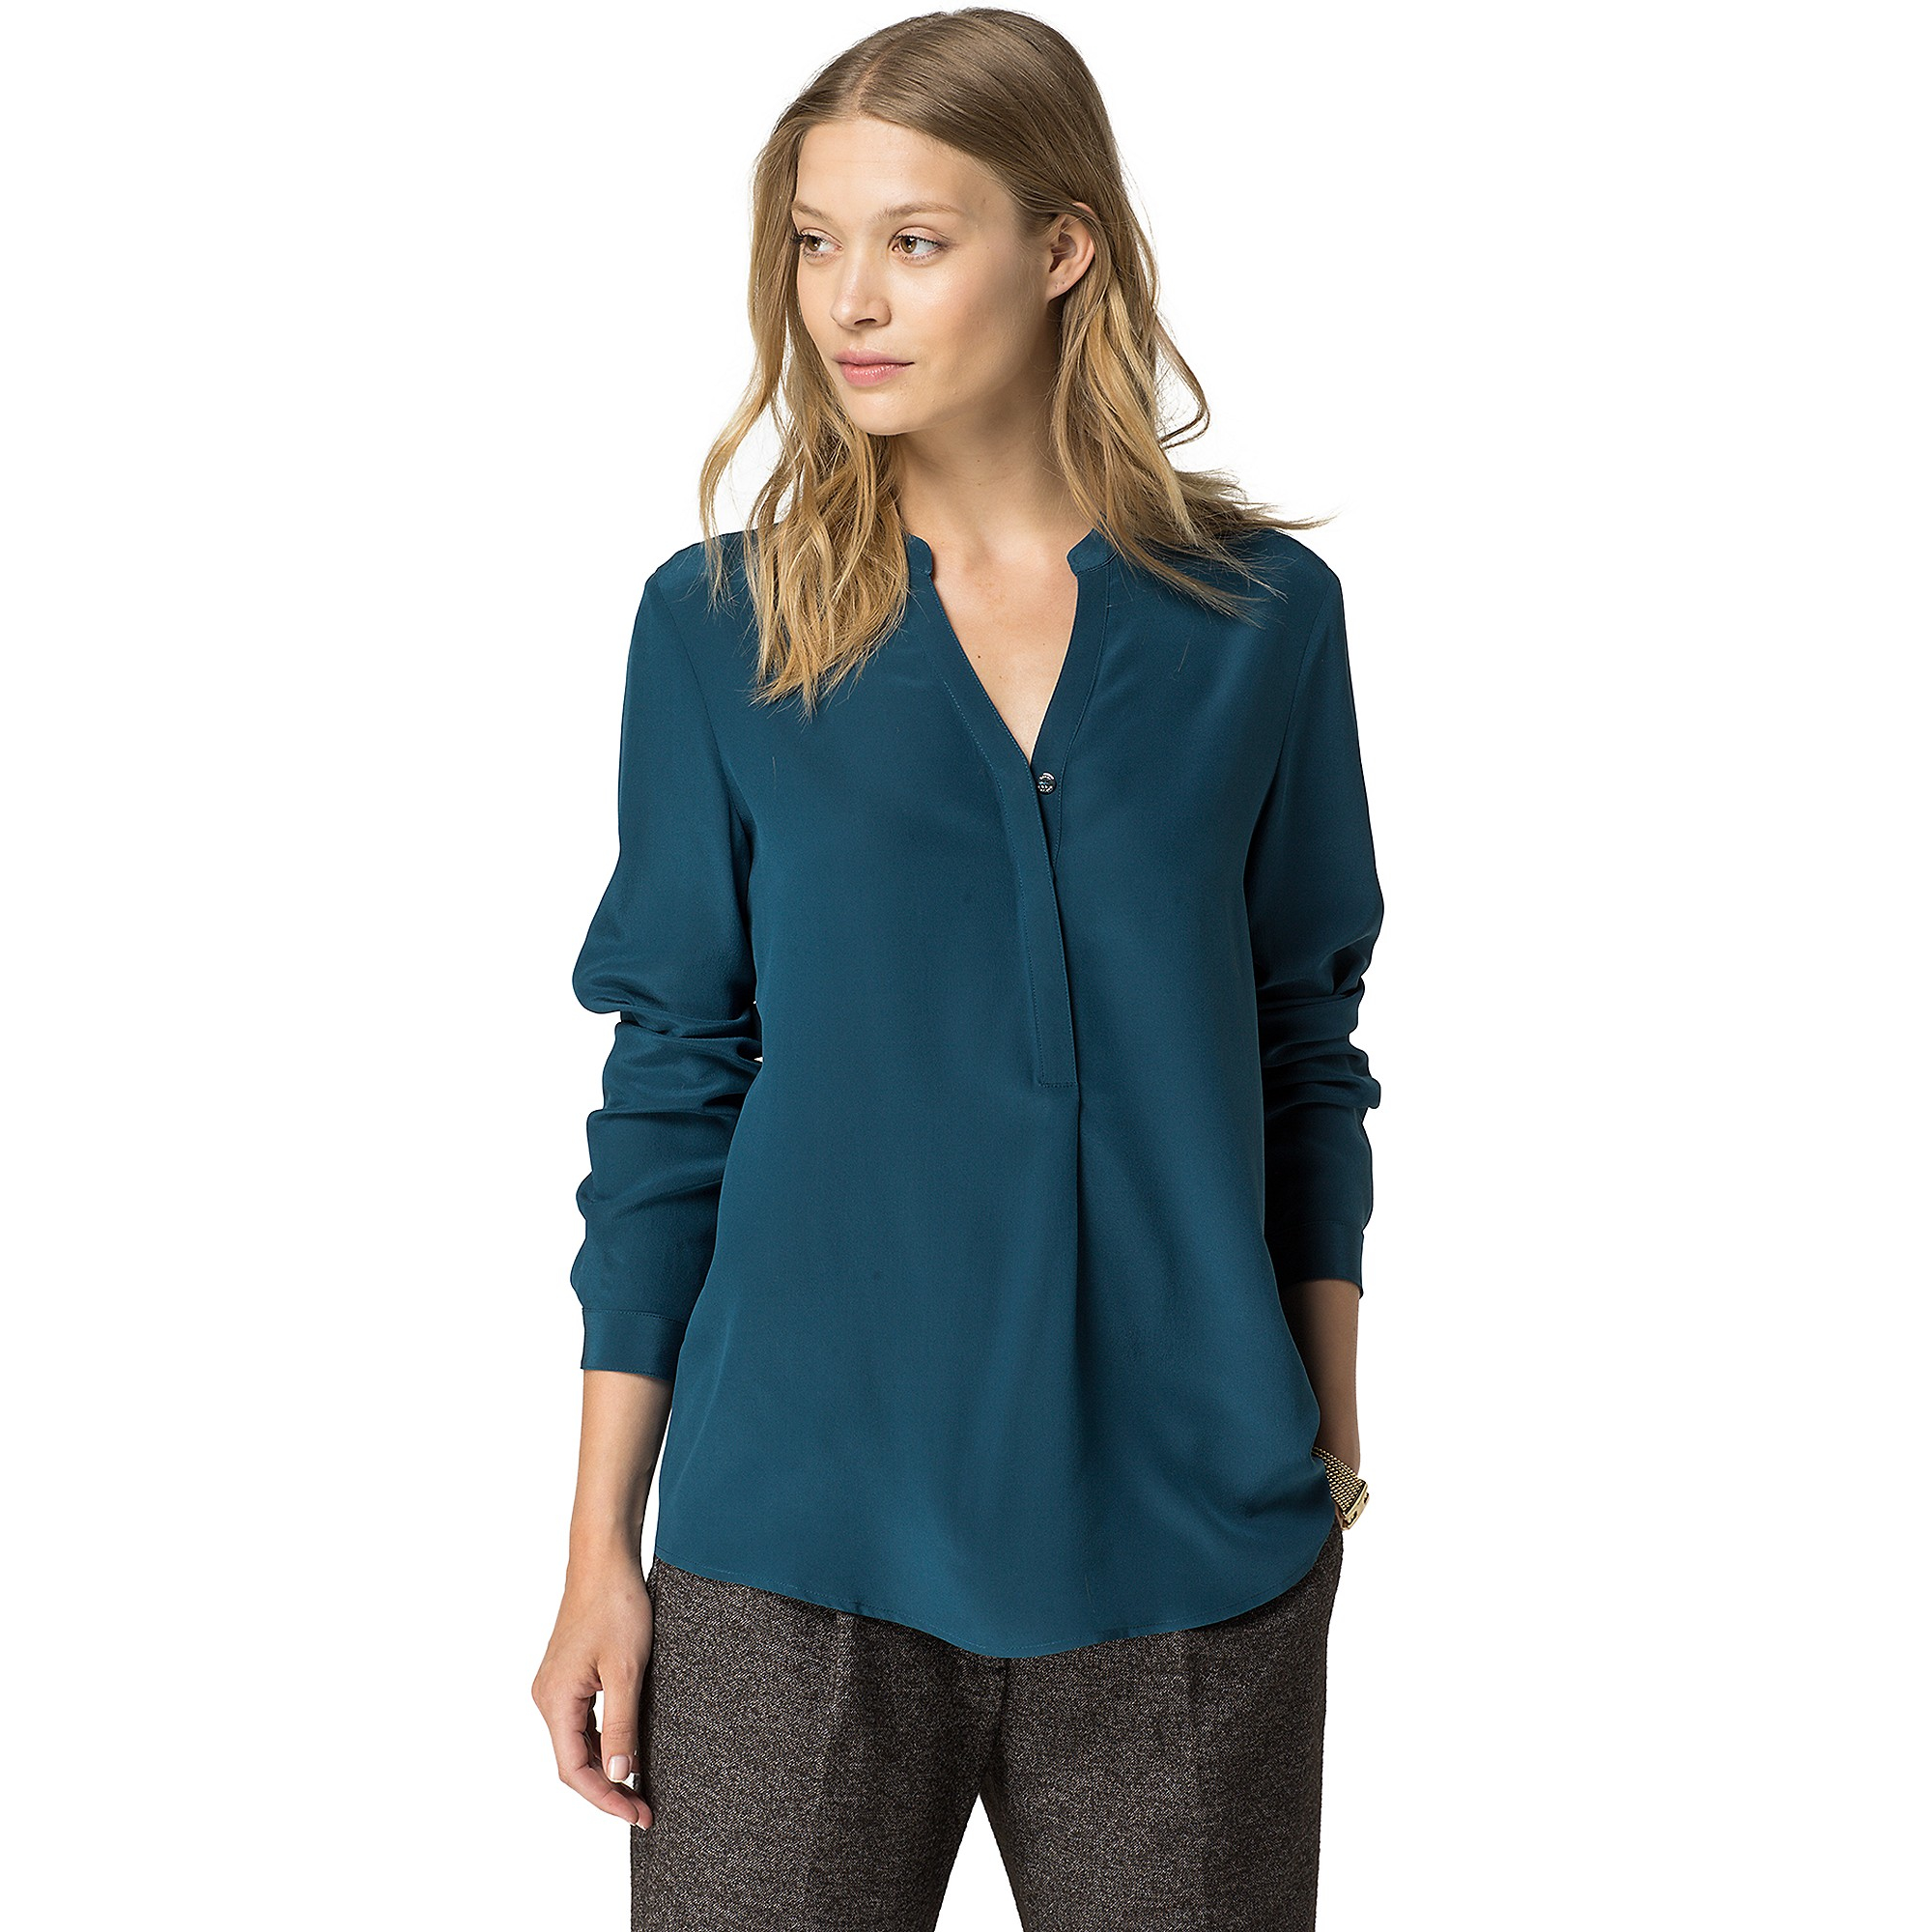 tommy hilfiger silk teal blouse in teal deep teal lyst. Black Bedroom Furniture Sets. Home Design Ideas